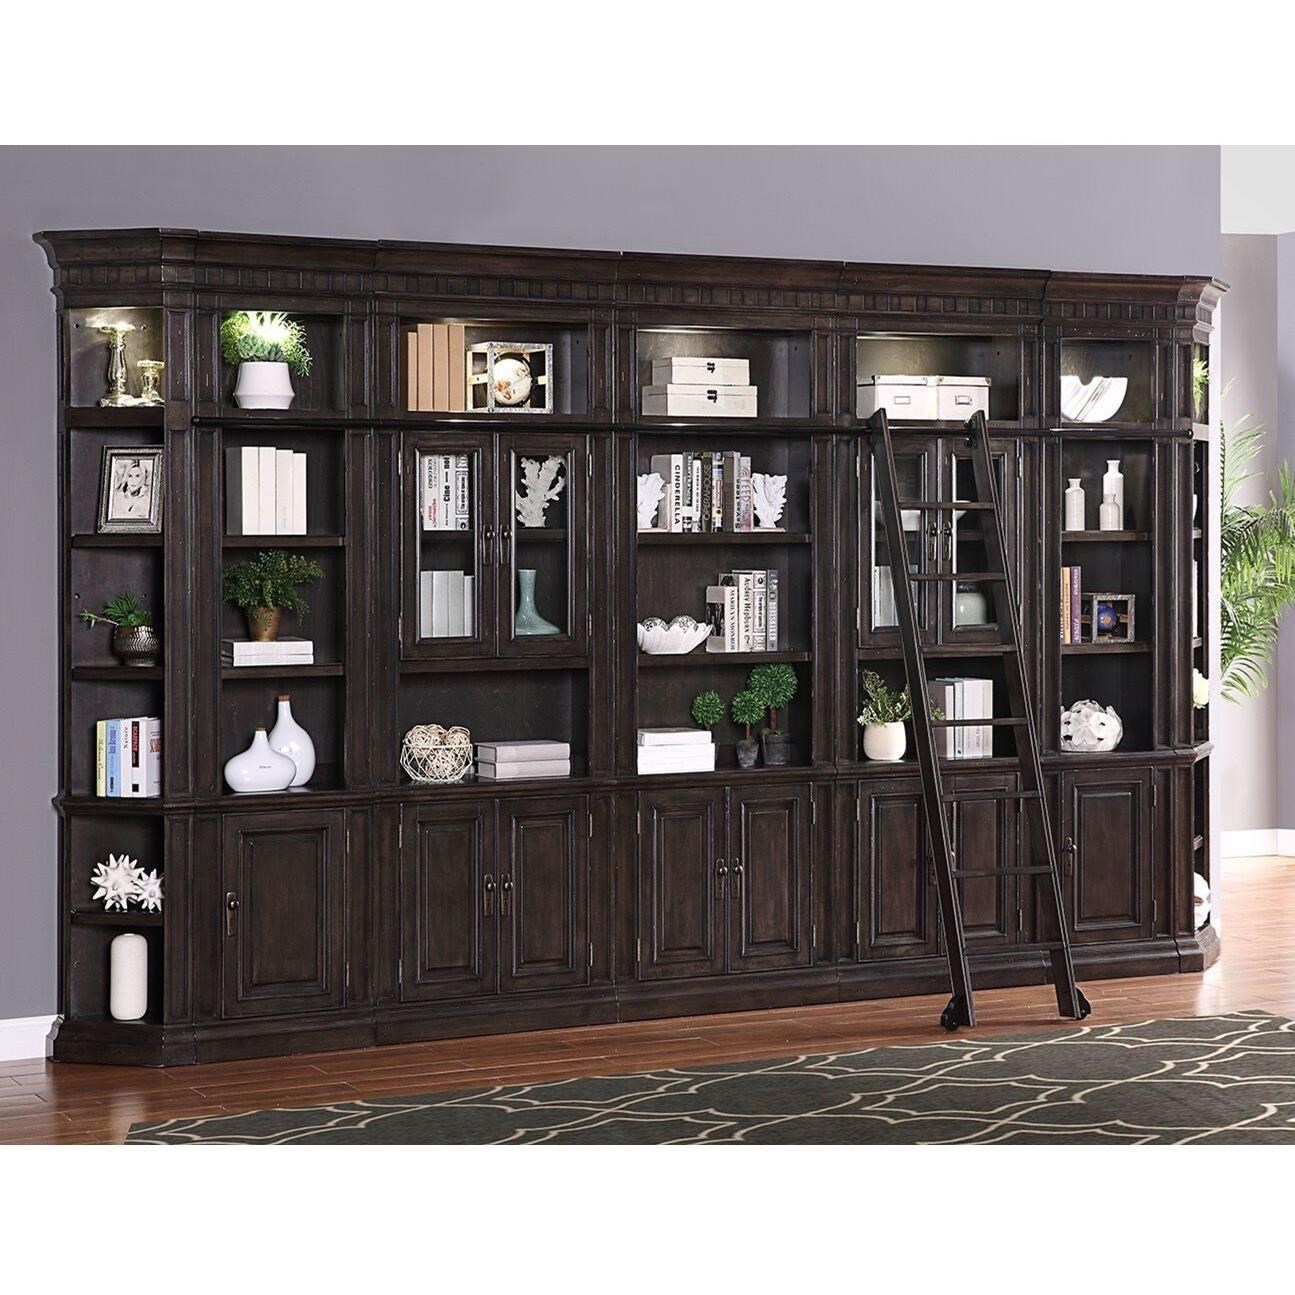 Parker House Washington Heights Bookcase Wall Unit With